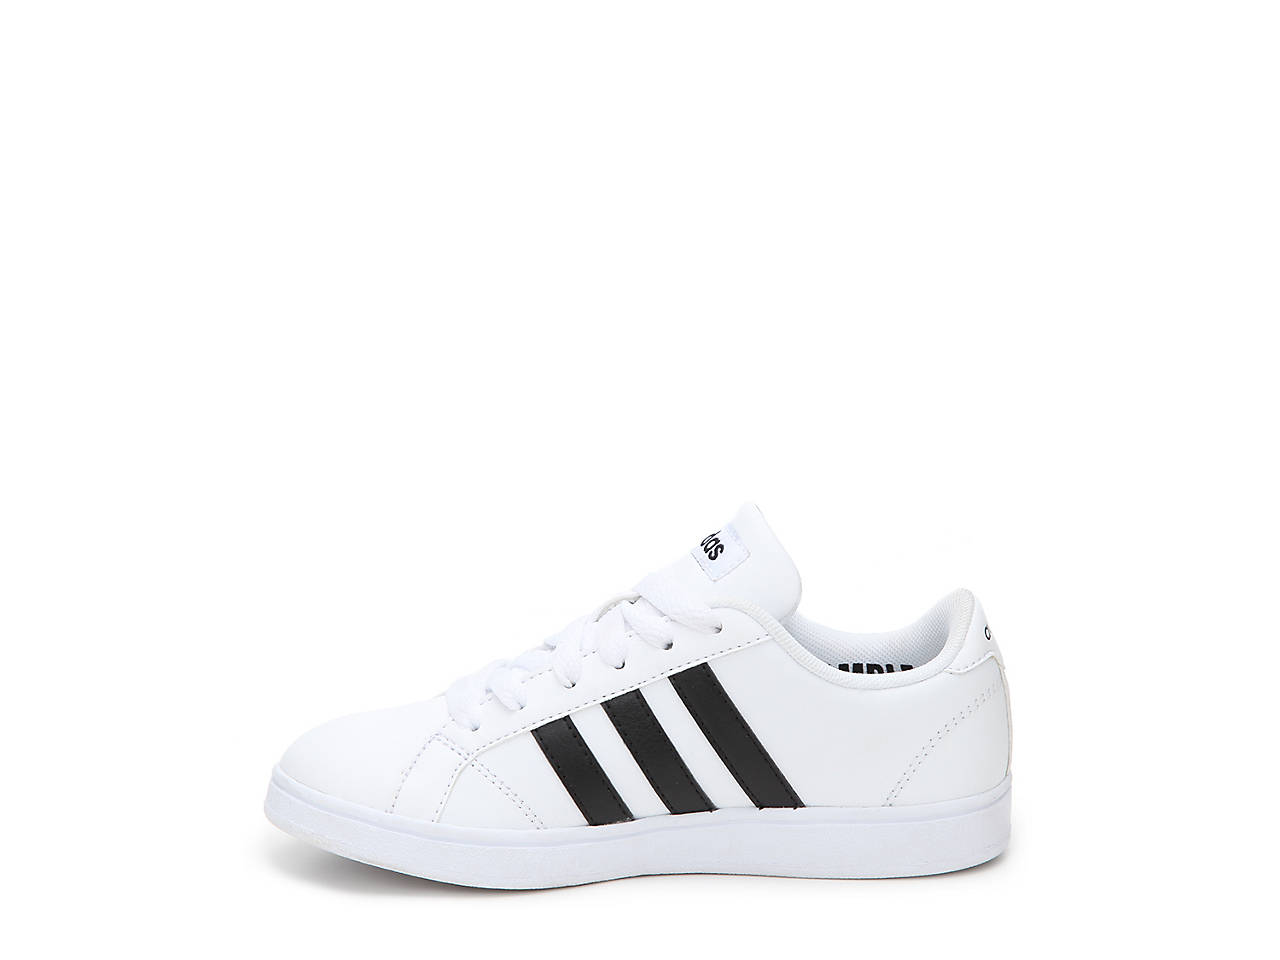 9408e1dc4f7e adidas Baseline Toddler   Youth Sneaker Kids Shoes